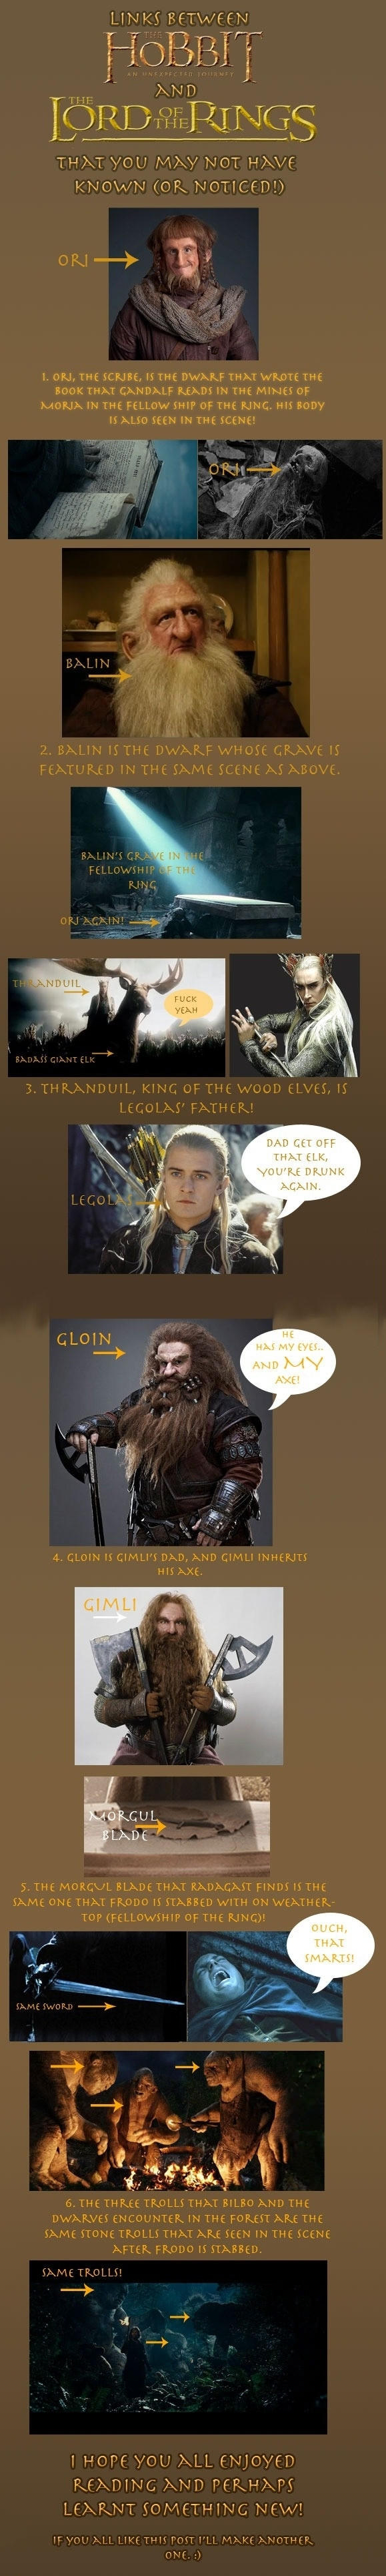 Links between The Hobbit & The Lord of the Rings -   Misc